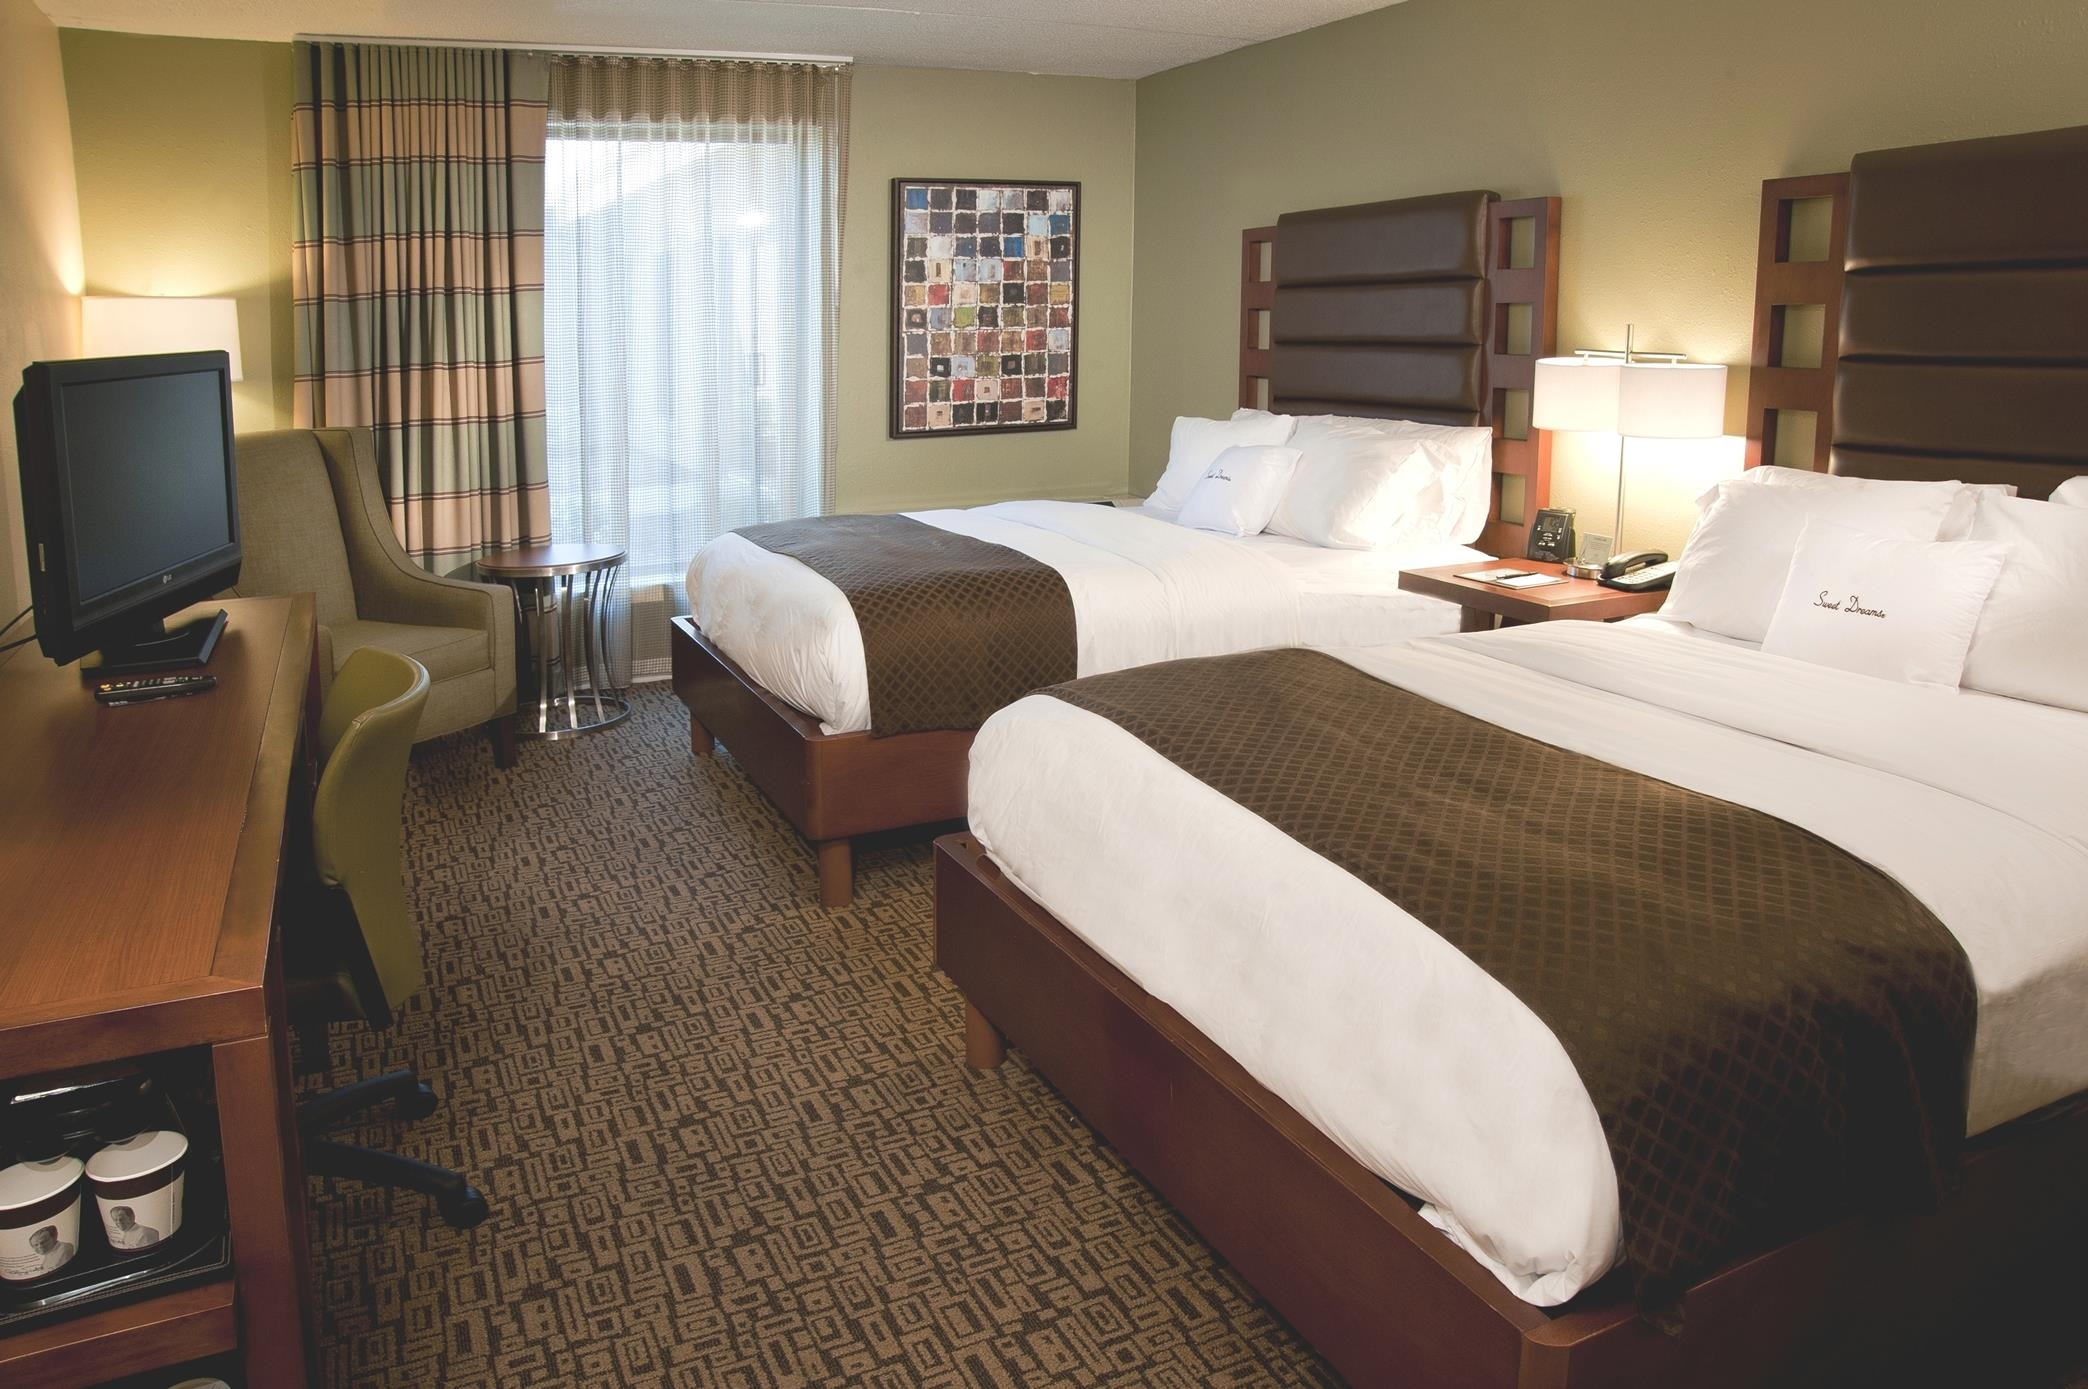 DoubleTree by Hilton Hotel Collinsville - St. Louis image 12